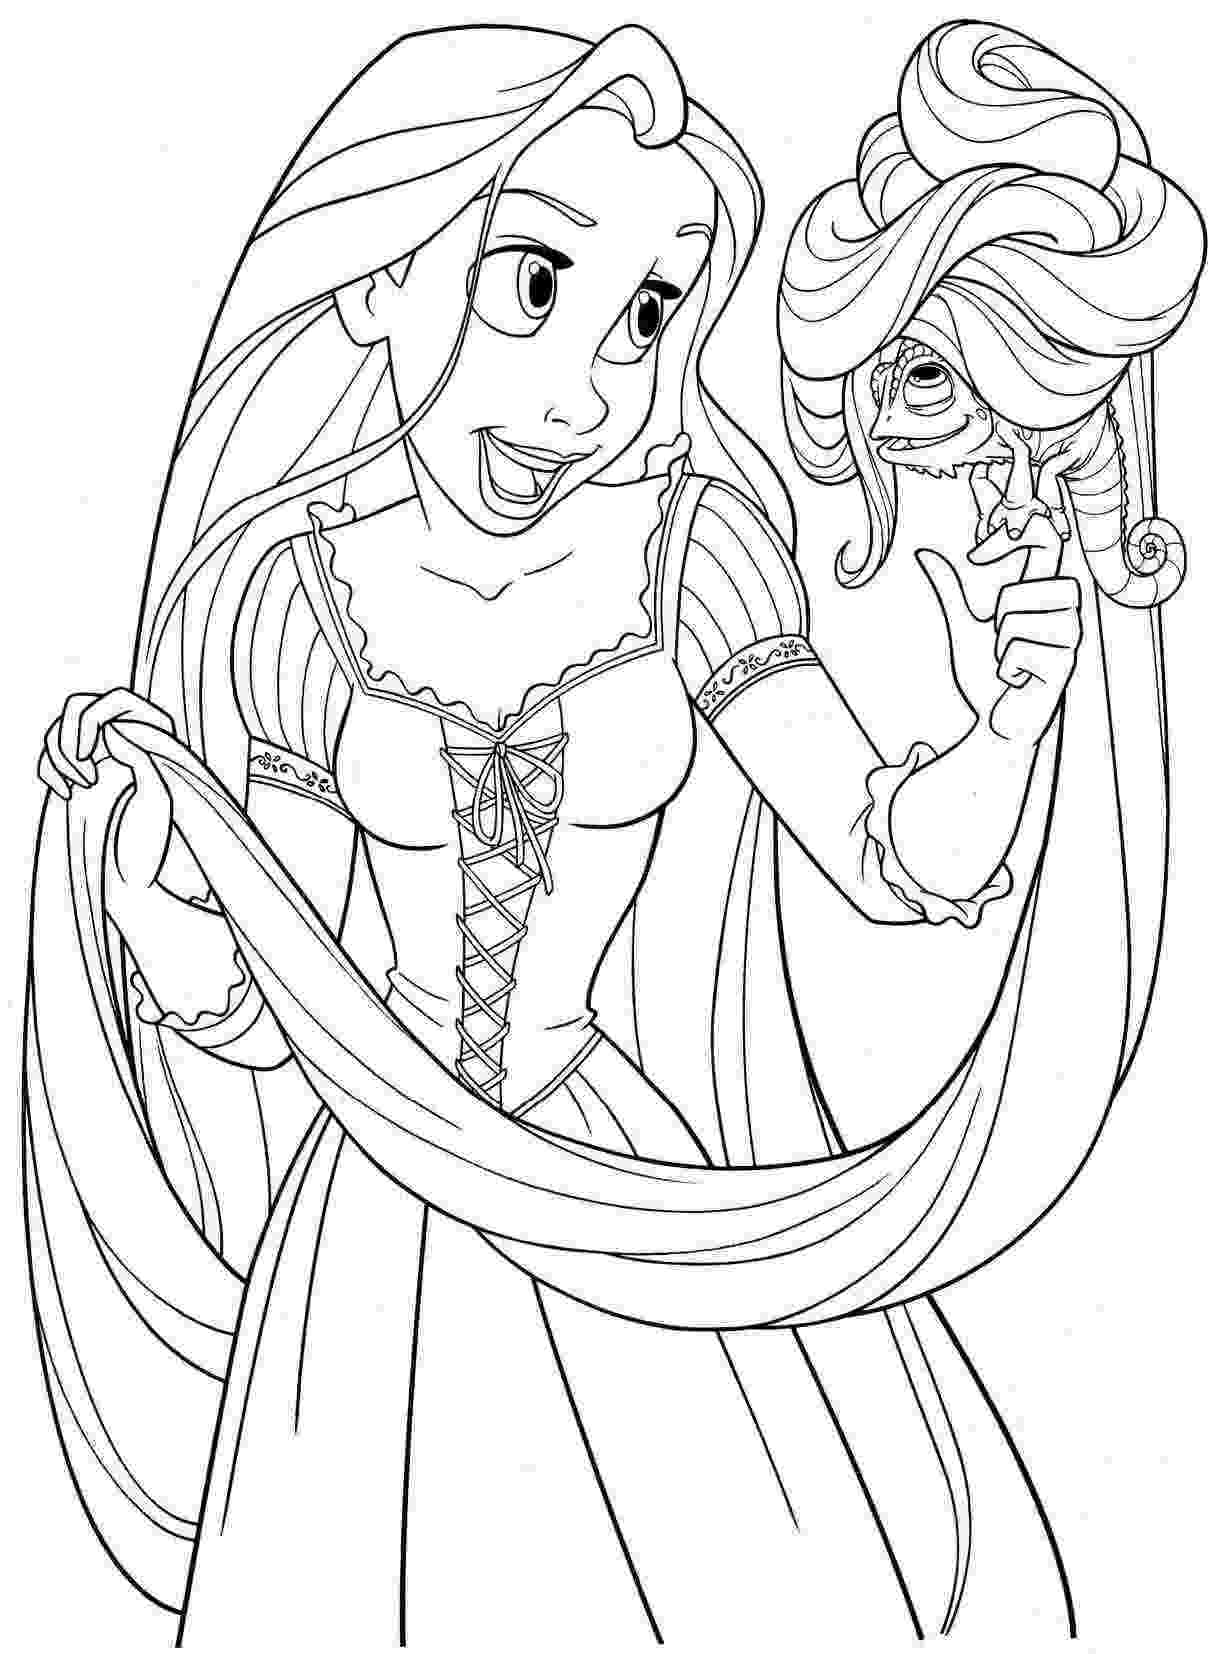 free disney princess coloring pages printable free colouring pages disney princess rapunzel princess pages free disney coloring